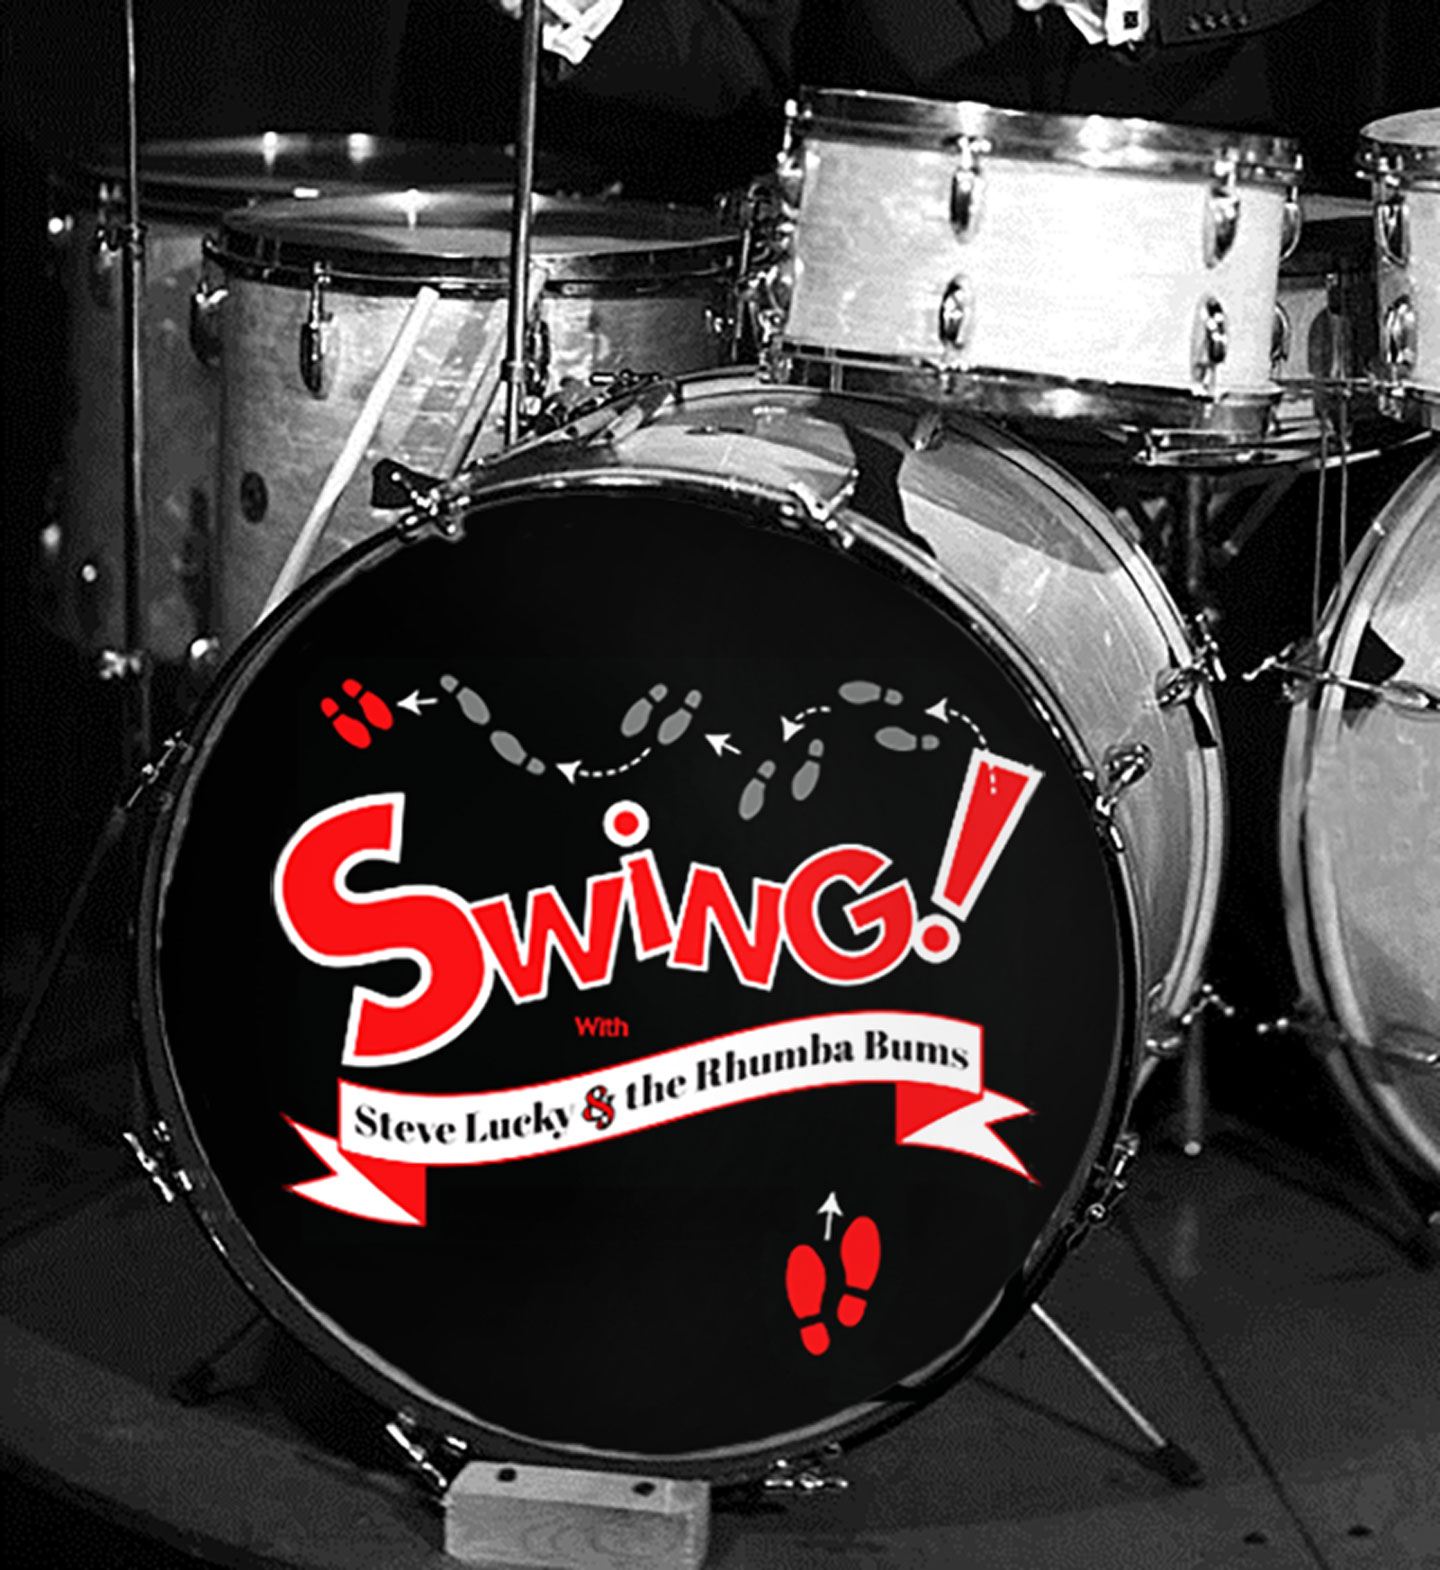 Swing_vintage-bass-drum_web